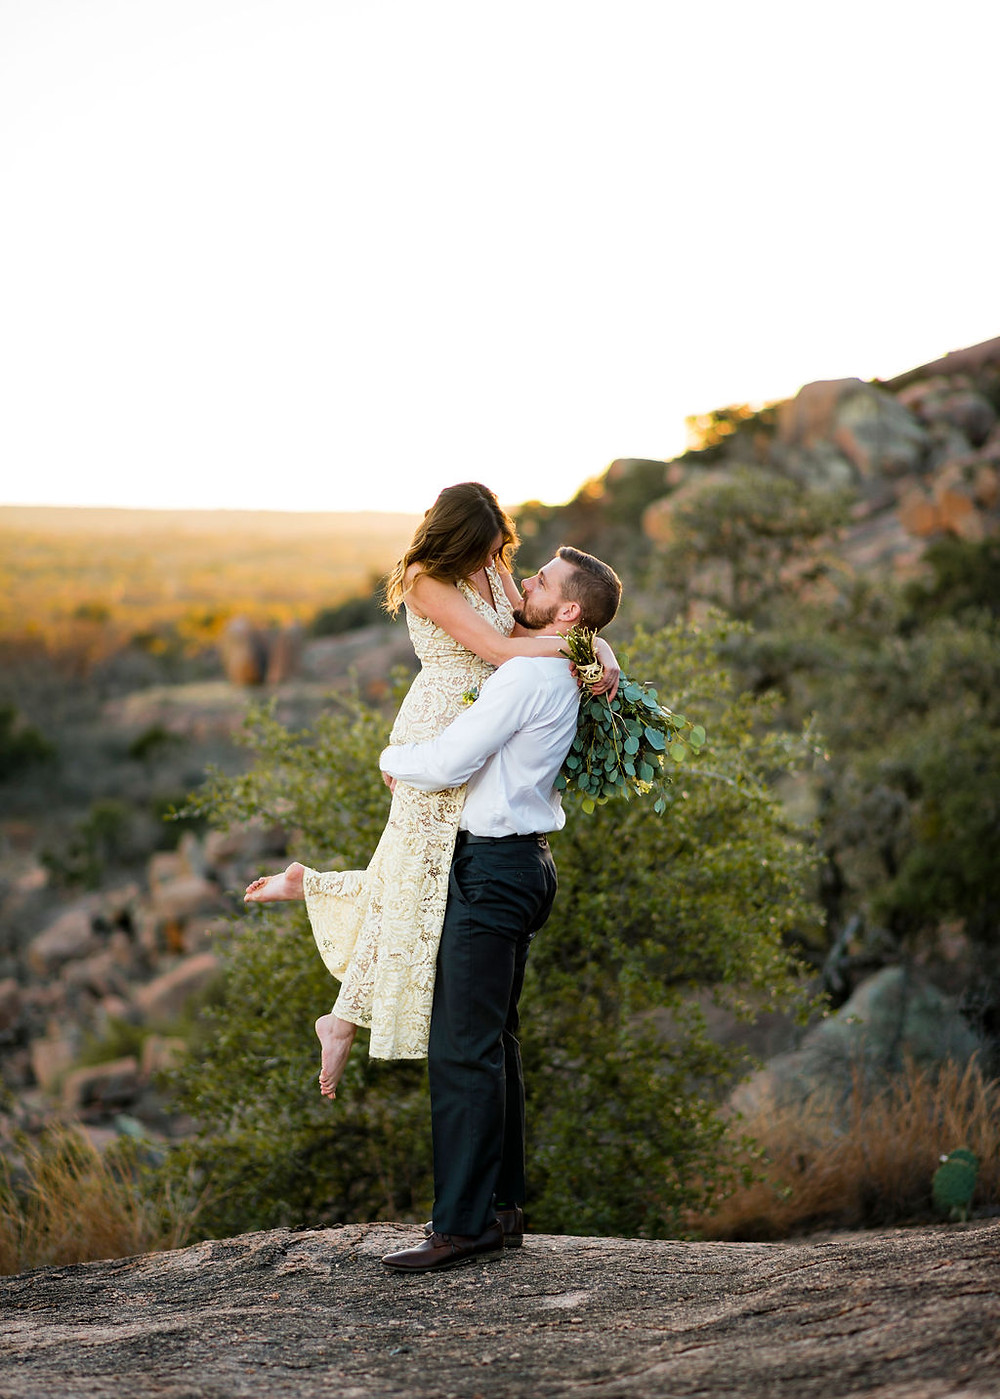 groom lifts up bride for wedding portrait. Bride has one bare foot kicked up into the air. Her arms are wrapped around his neck and she's holding her bouquet. In the background you can see the hill country. The couple is on enchanted rock for their elopement.